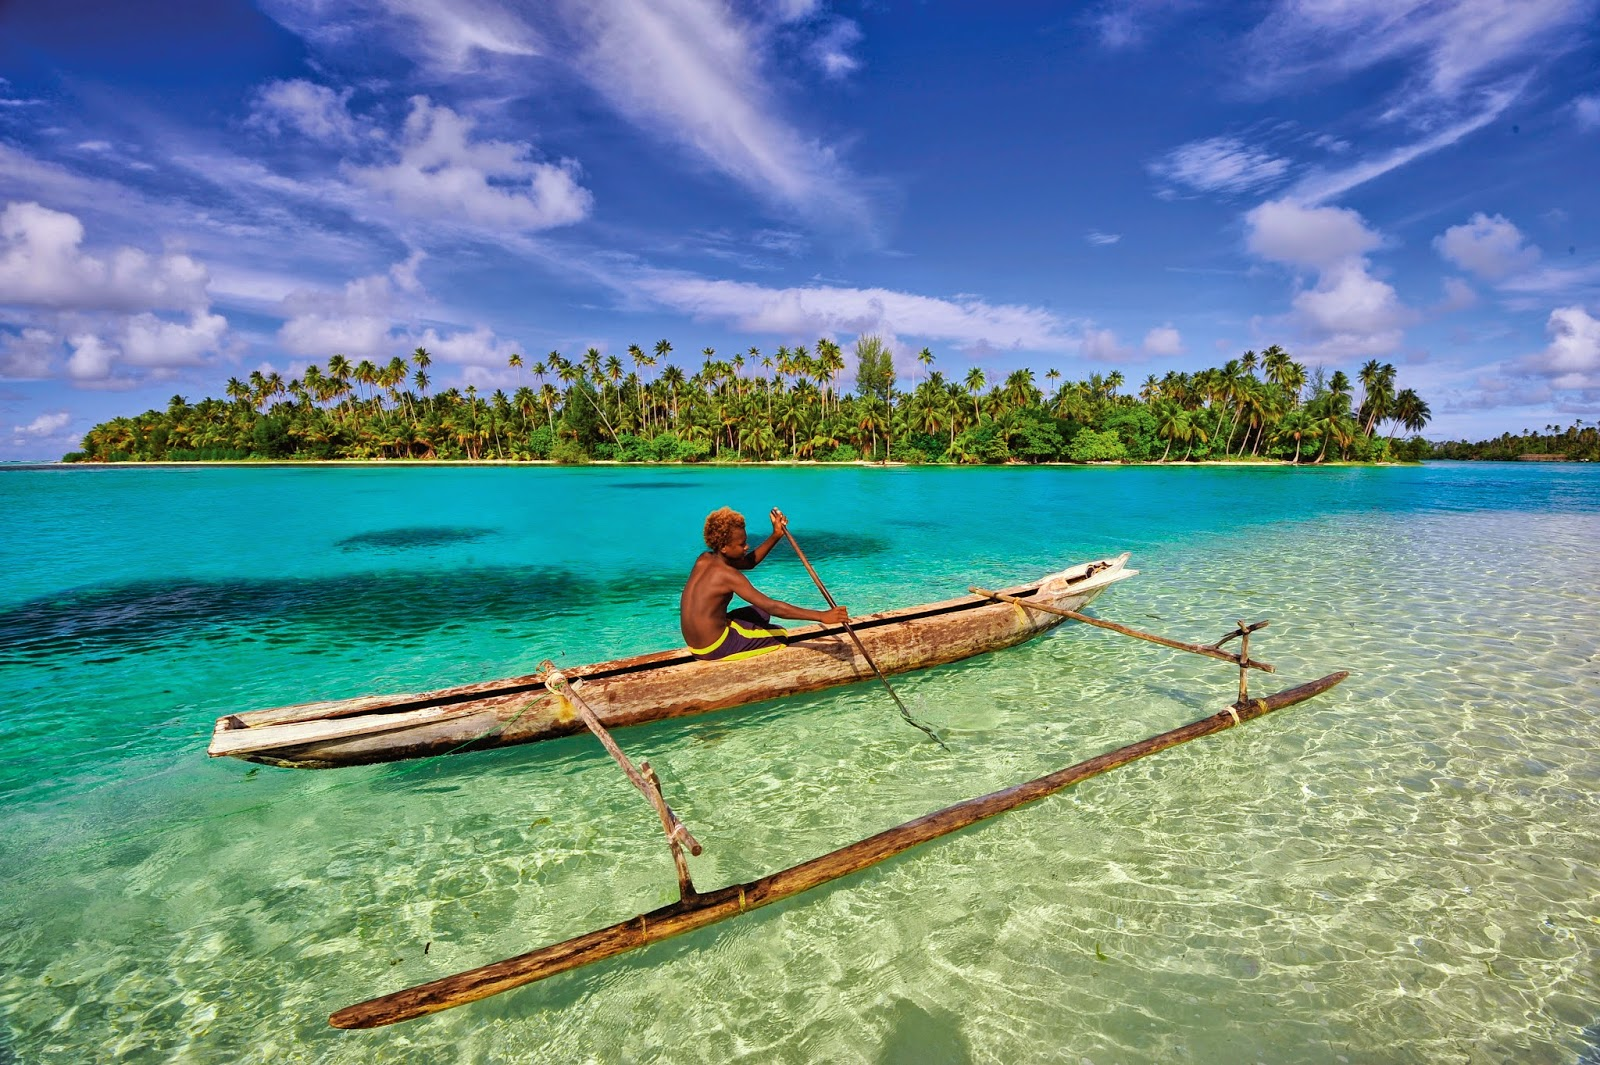 A boy canoeing in crystal clear water - Papua New Guinea